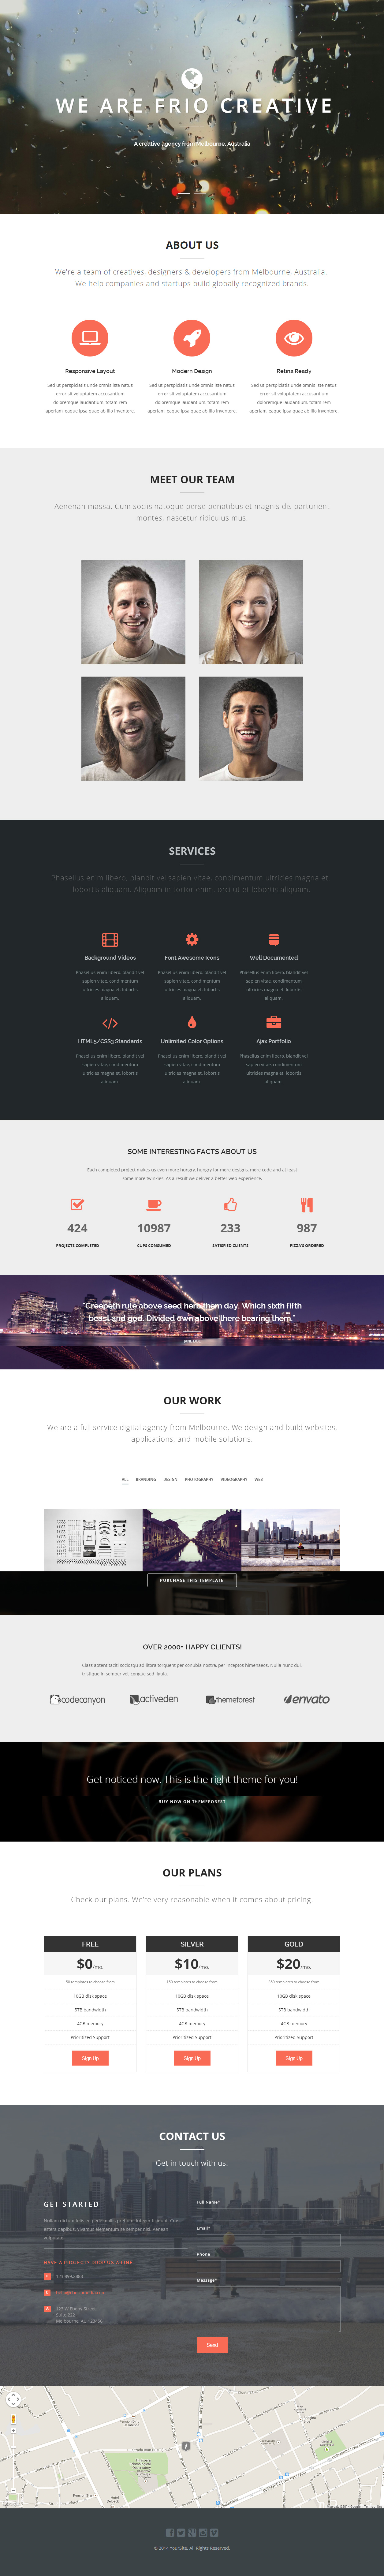 10 Best Responsive Blog HTML5 Templates in 2014 - Responsive Miracle